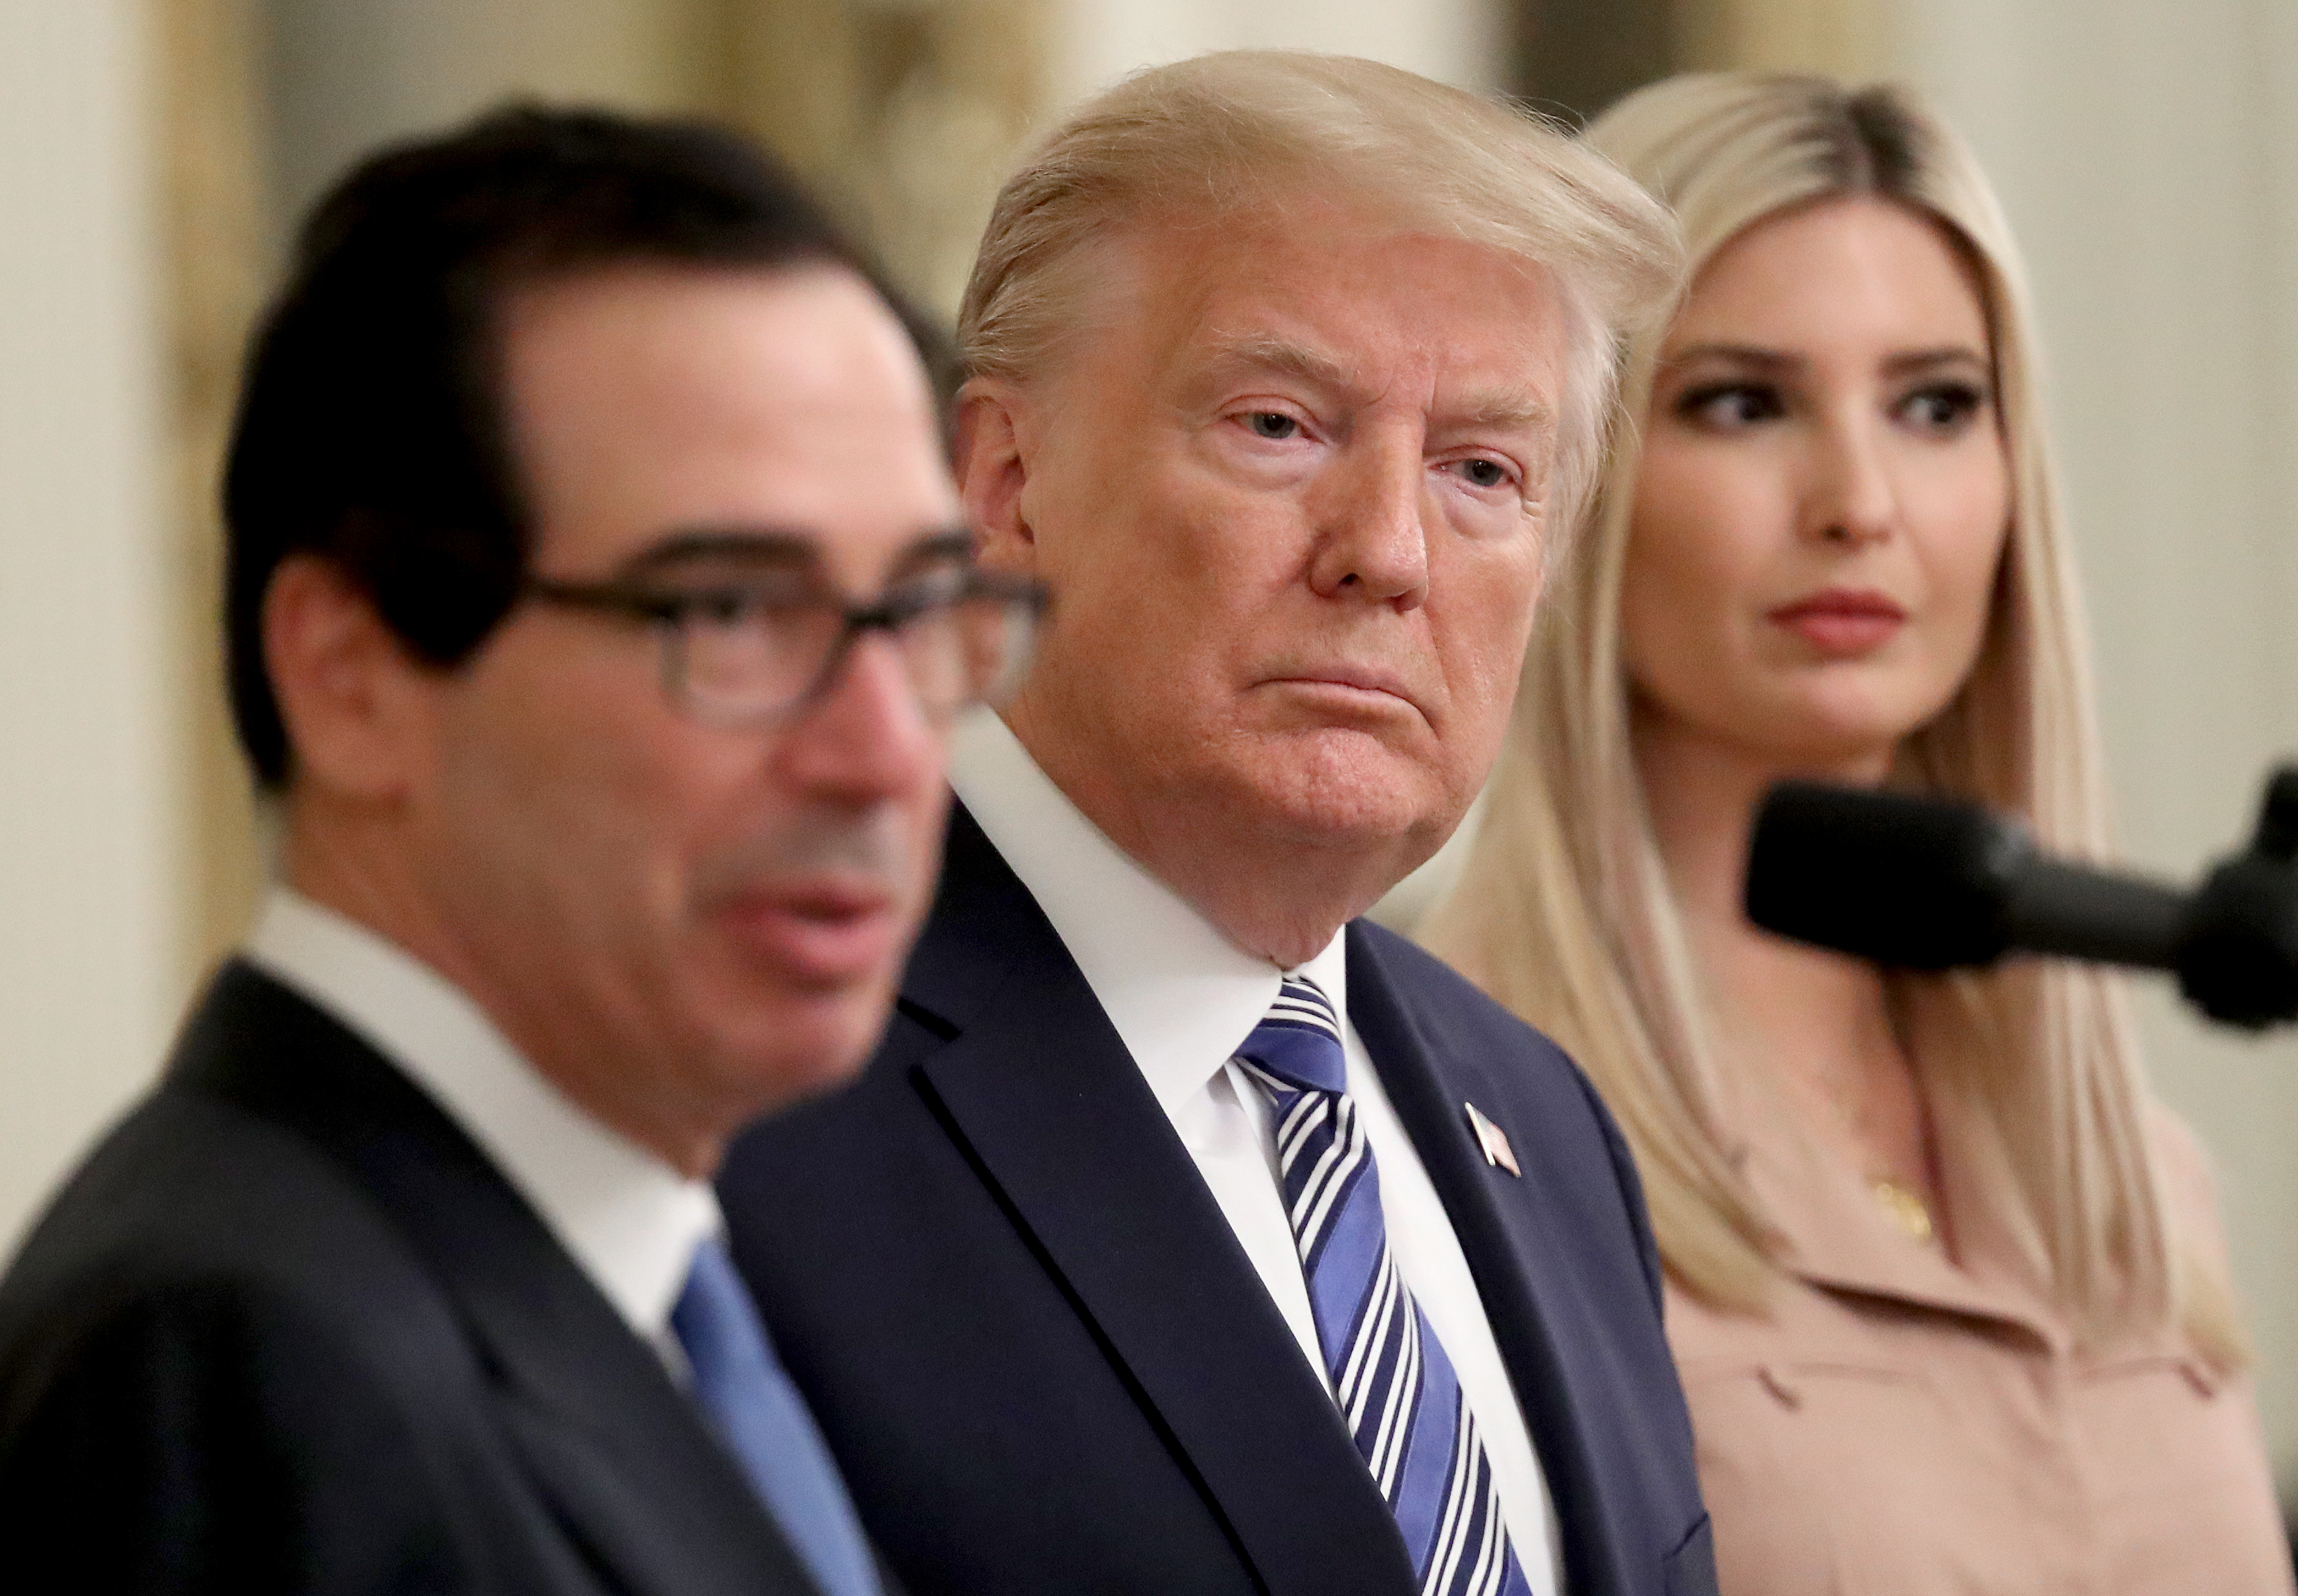 WASHINGTON, DC - APRIL 28: U.S. President Donald Trump and his daughter Ivanka listen as U.S .Treasury Secretary Steven Mnuchin speaks during an event on supporting small businesses through the Paycheck Protection Program in the East Room of the White House April 28, 2020 in Washington, DC. An total of $659 billion has been allocated for small business loans in coronavirus relief bills passed by Congress. (Photo by Win McNamee/Getty Images)